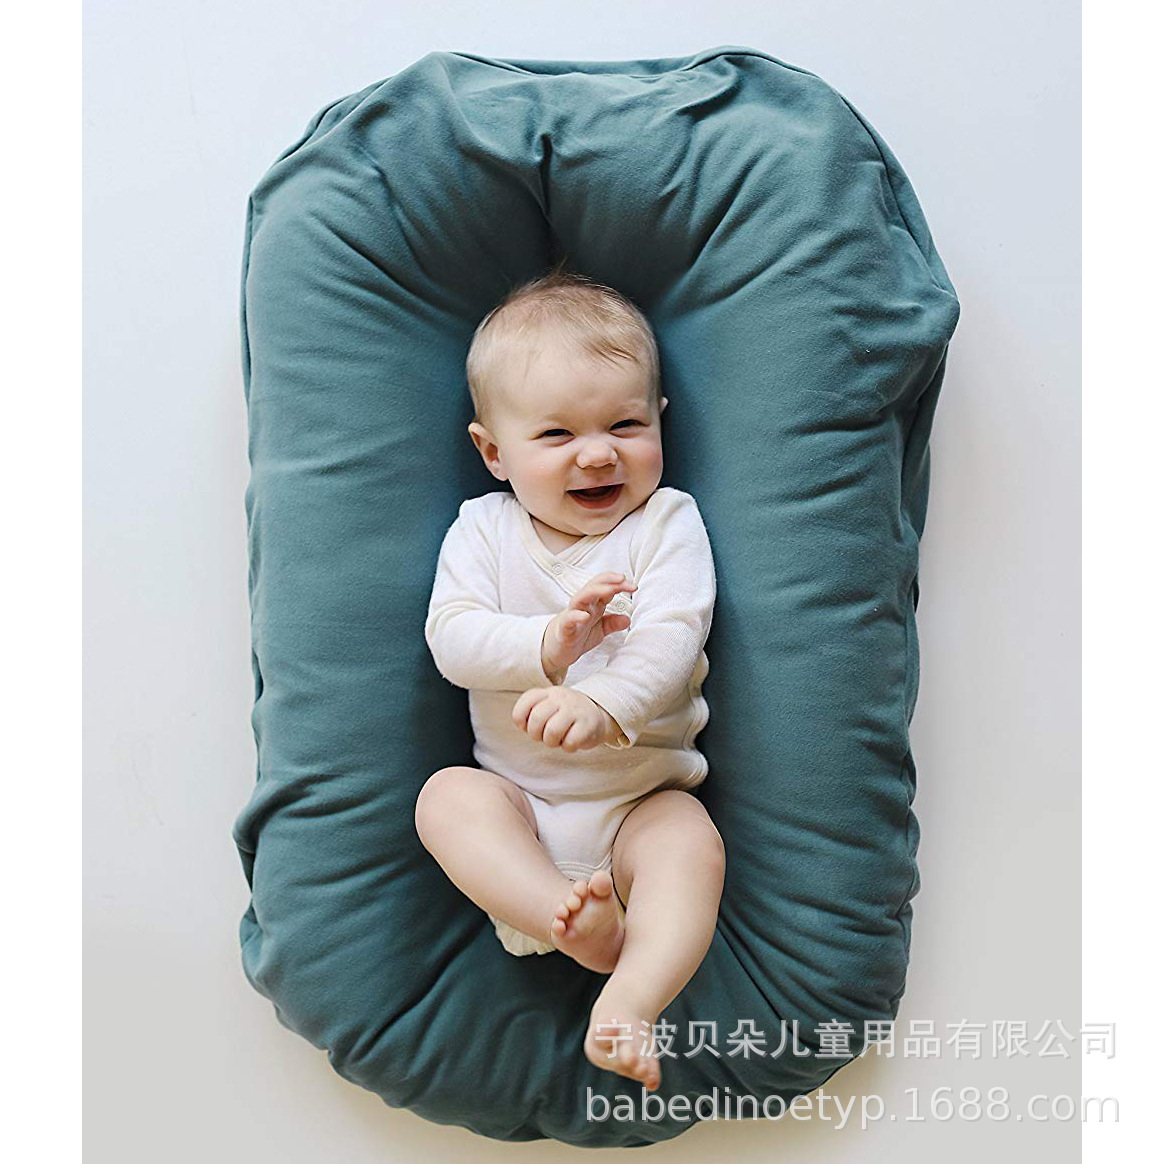 Baby Bed In Bed Travel Bed Easy Fold Sleeping Next Baby Nestins  Bed Crib Portable Removable And Washable Crib Travel Bed For